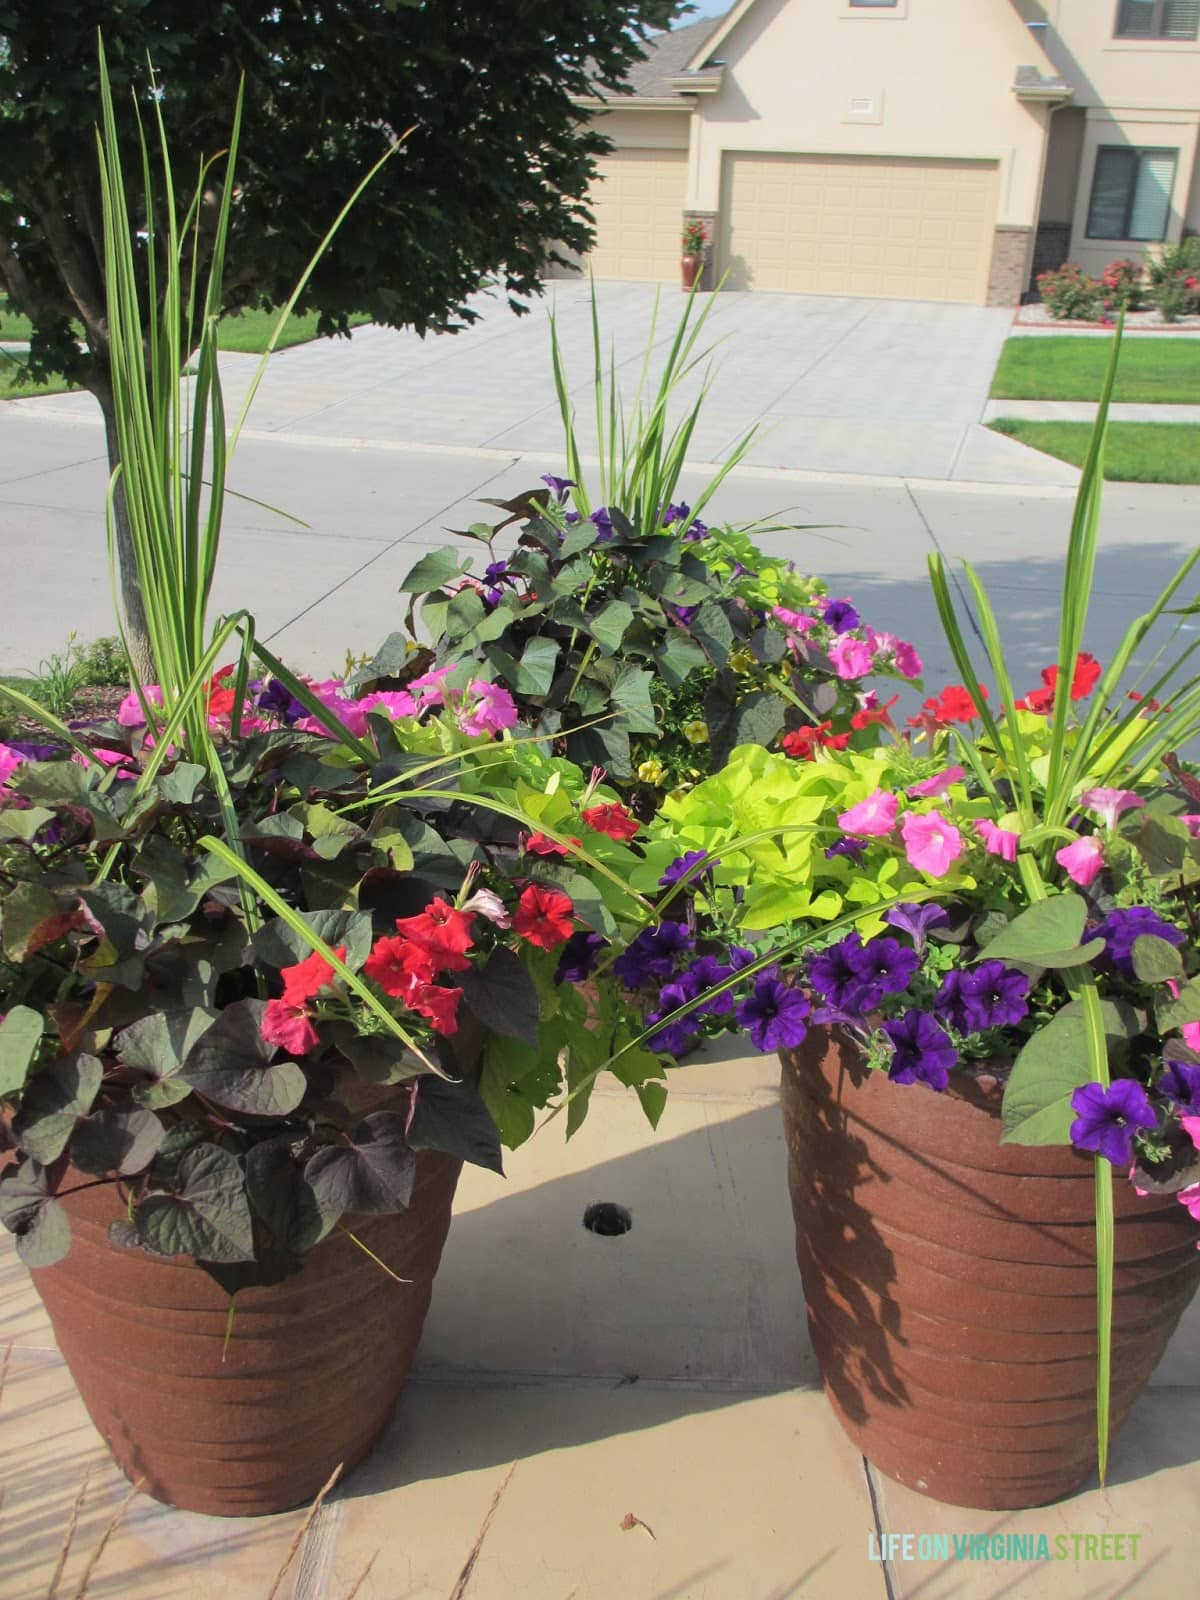 Some Hydrangea Love and Random Landscaping Thoughts - Life On Virginia Street